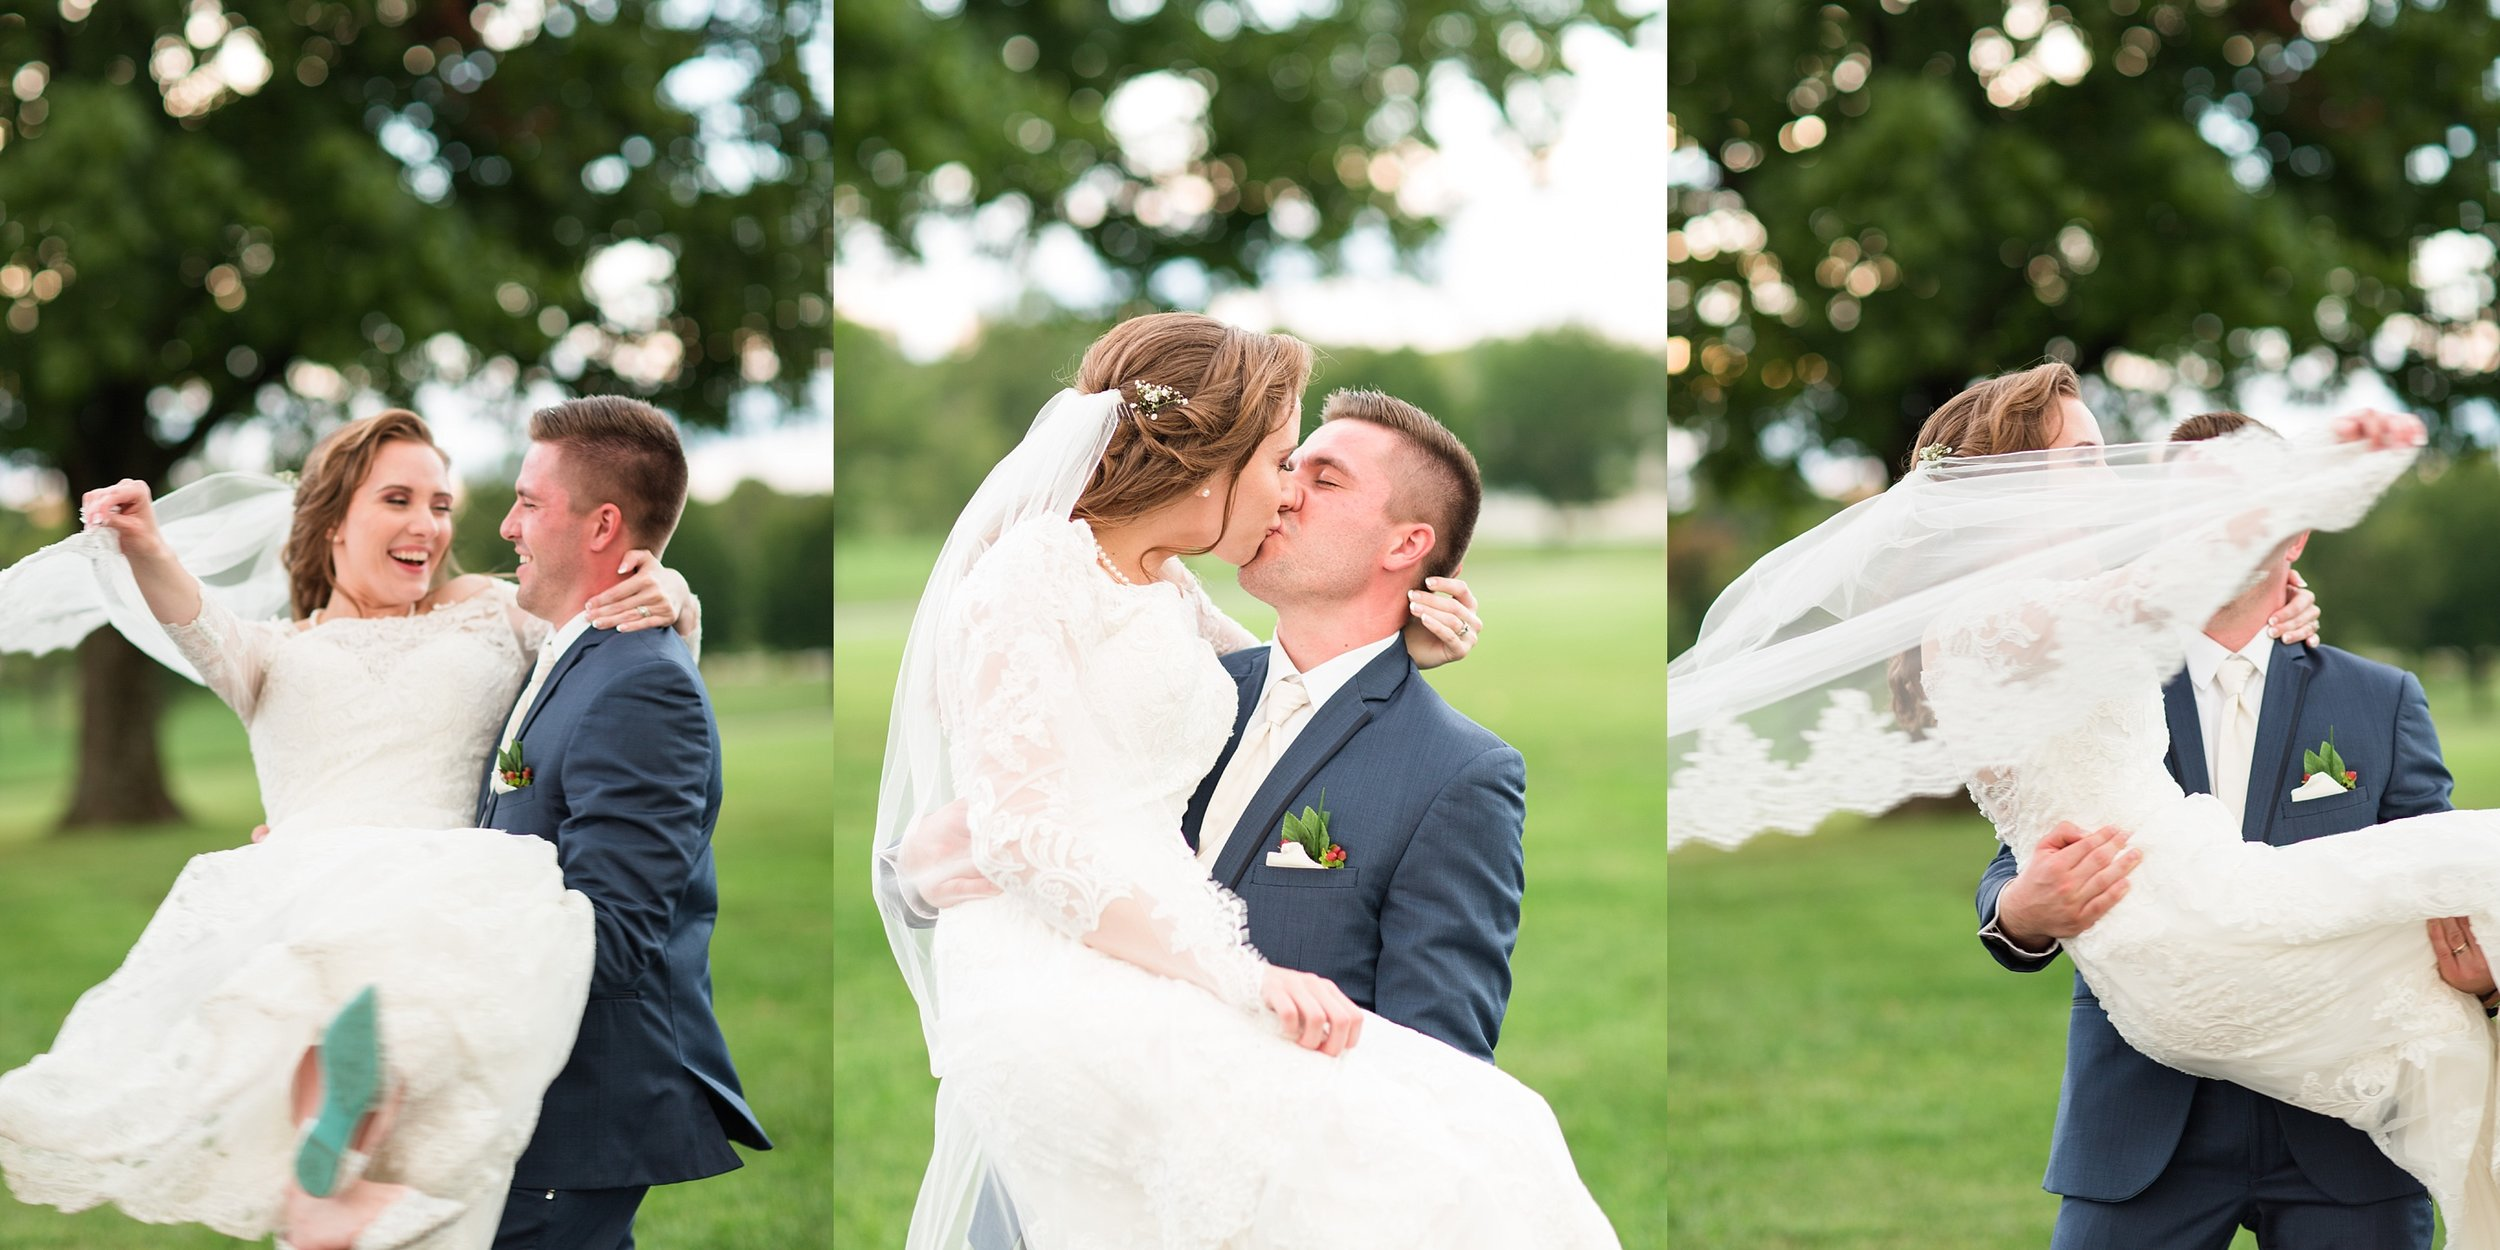 Missouri Weddings -Komorebi Photography- Fine Art Wedding Photographer